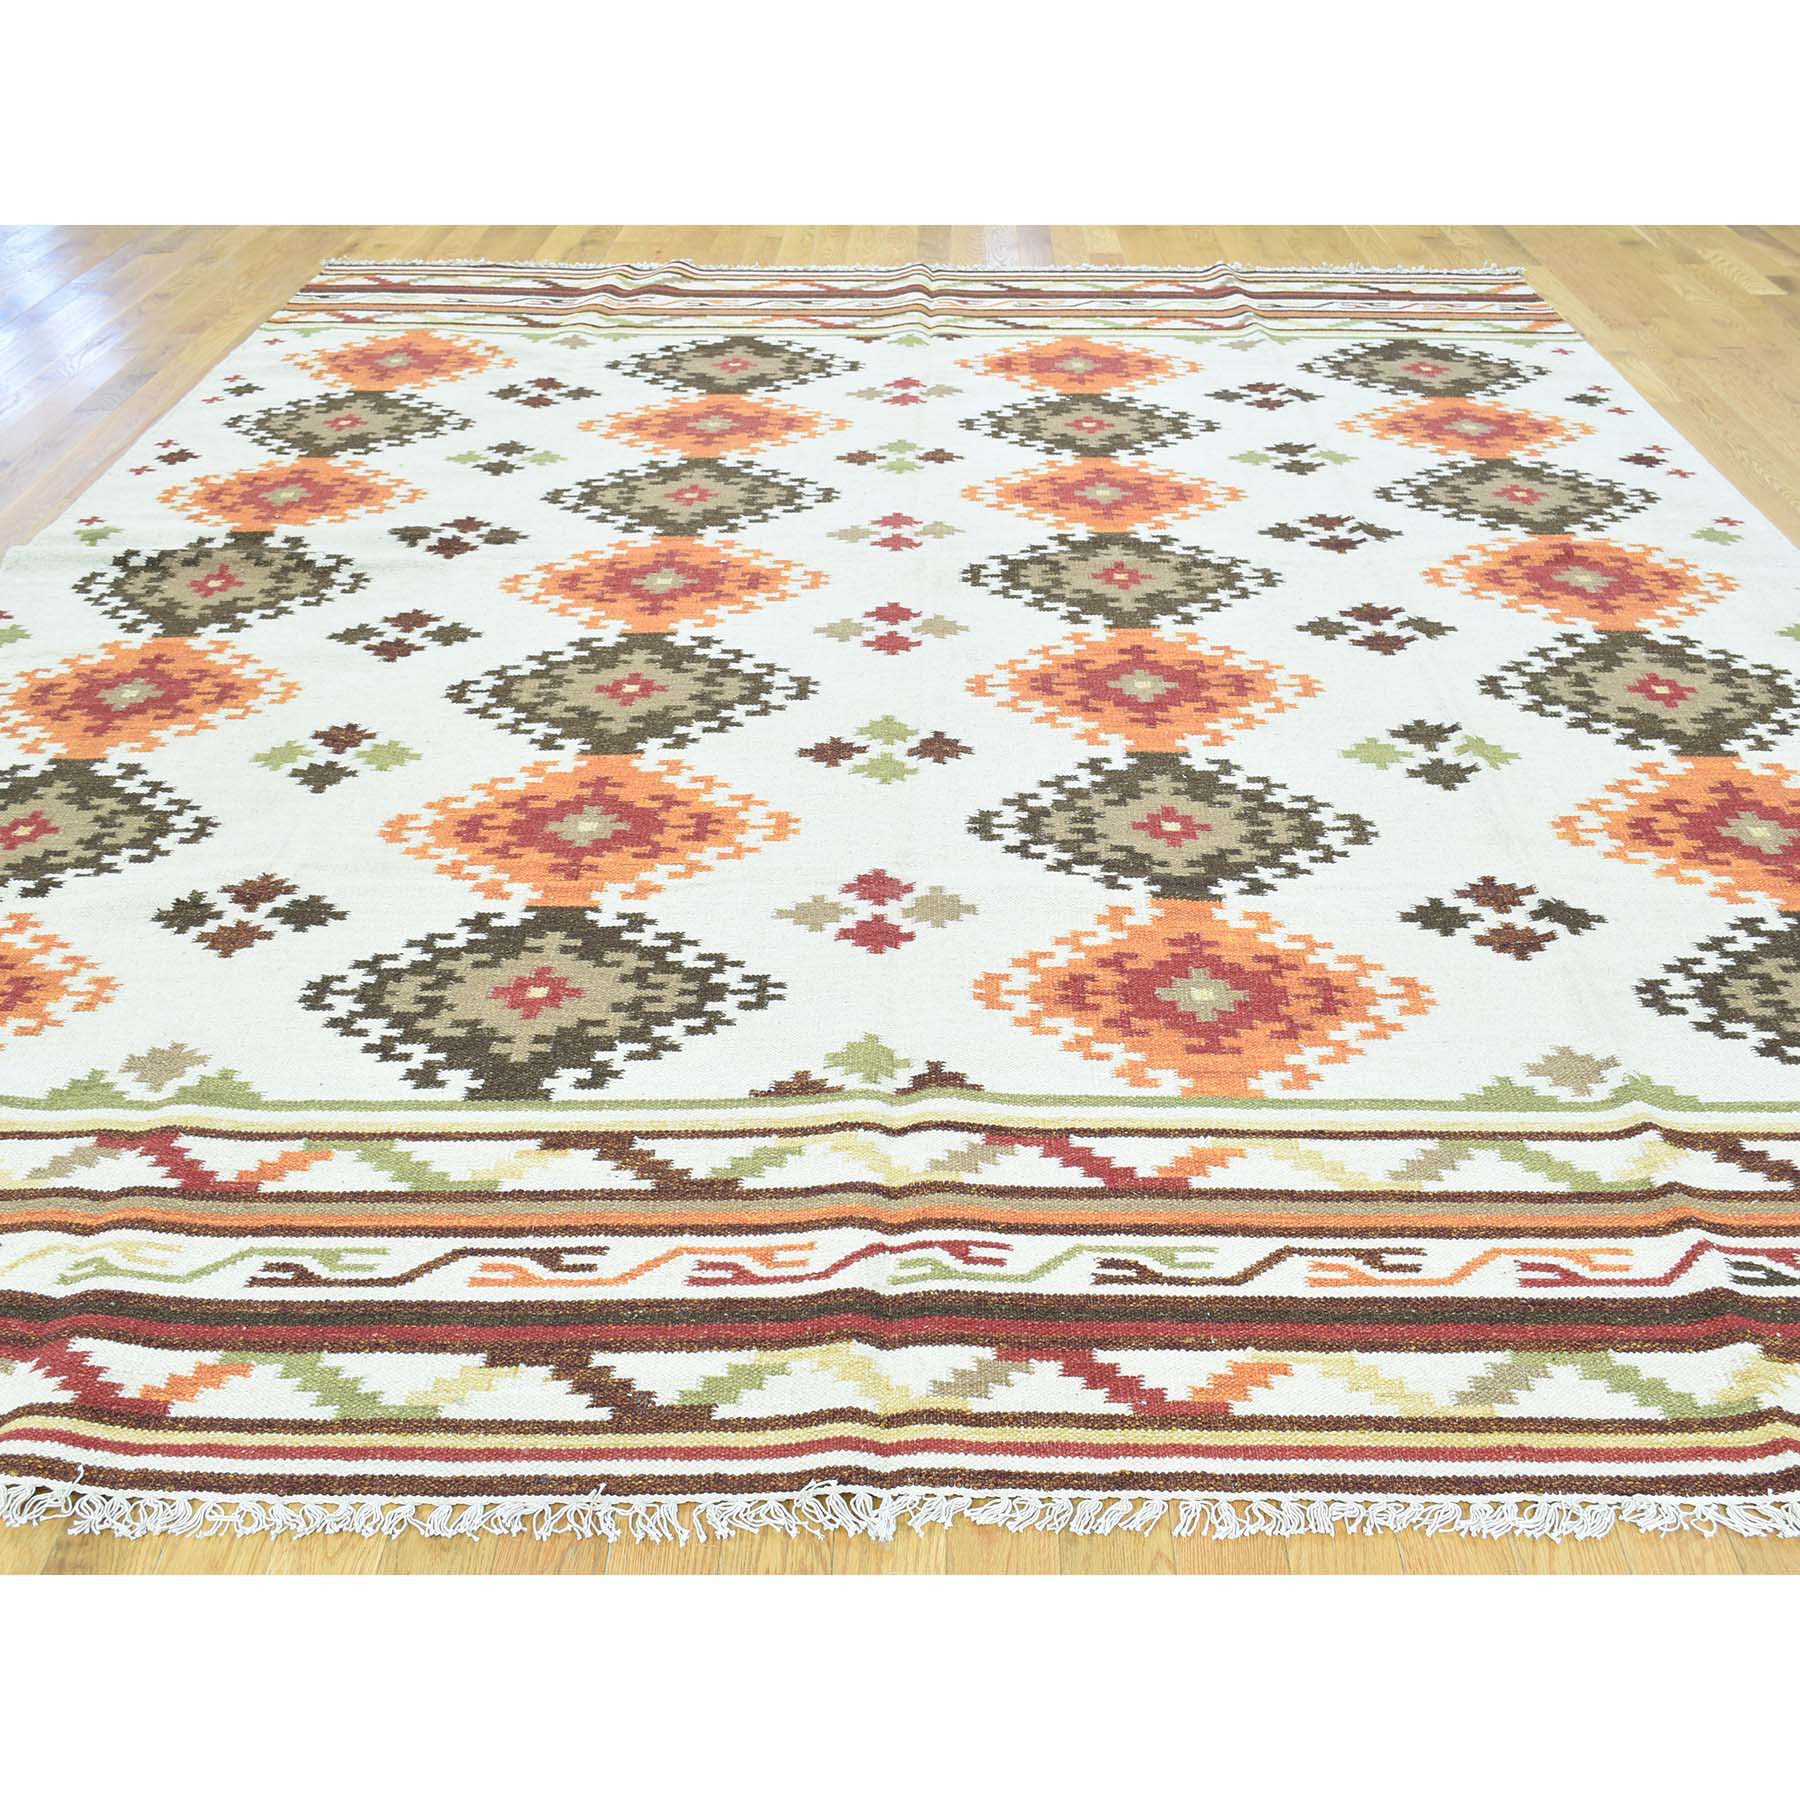 9-3 x11-8  Hand-Woven Anatolian Durie Kilim Flat Weave Oriental Rug